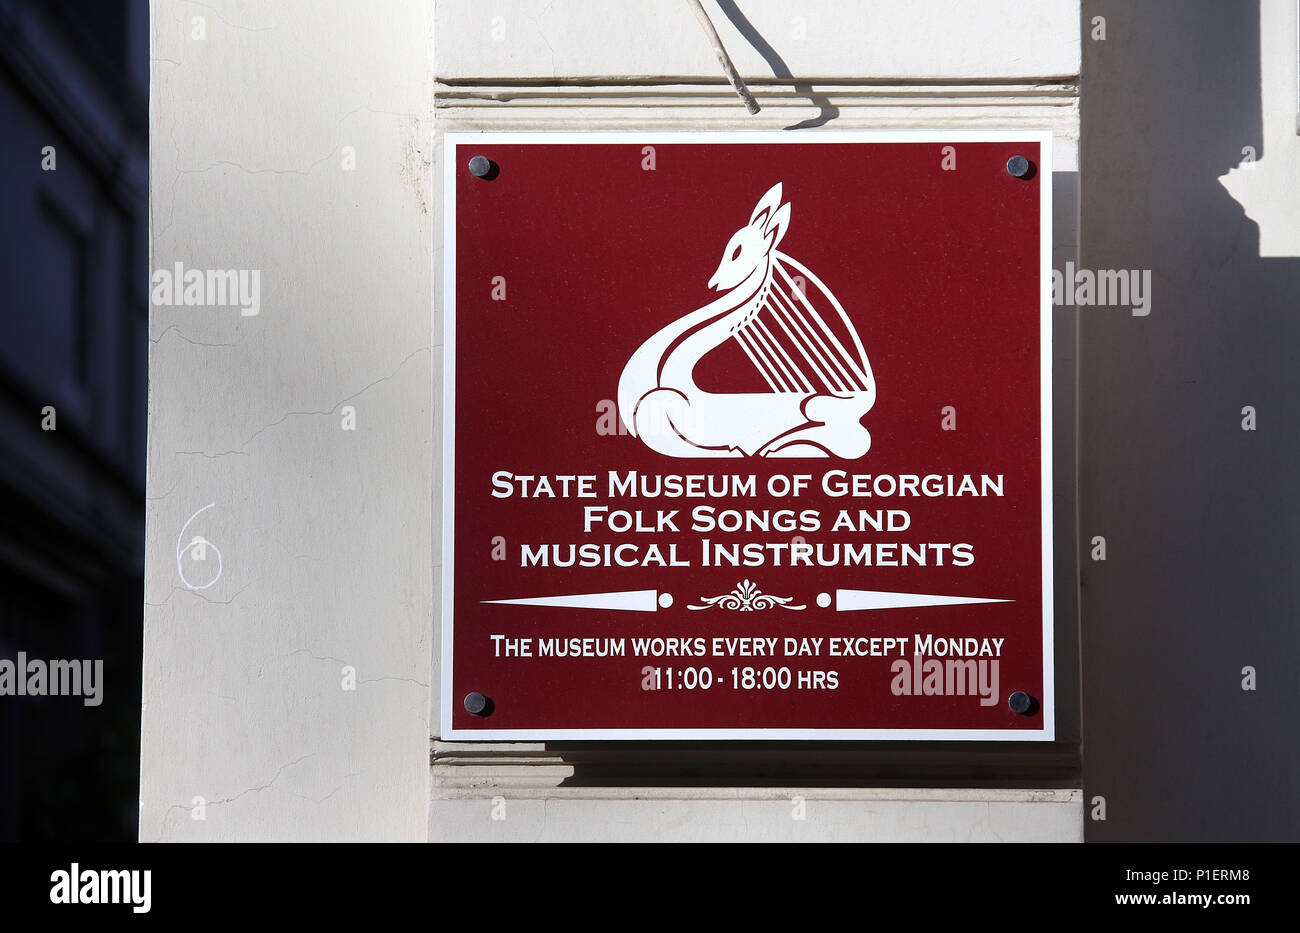 State Museum of Georgian Folk Songs and Musical Instruments - Stock Image